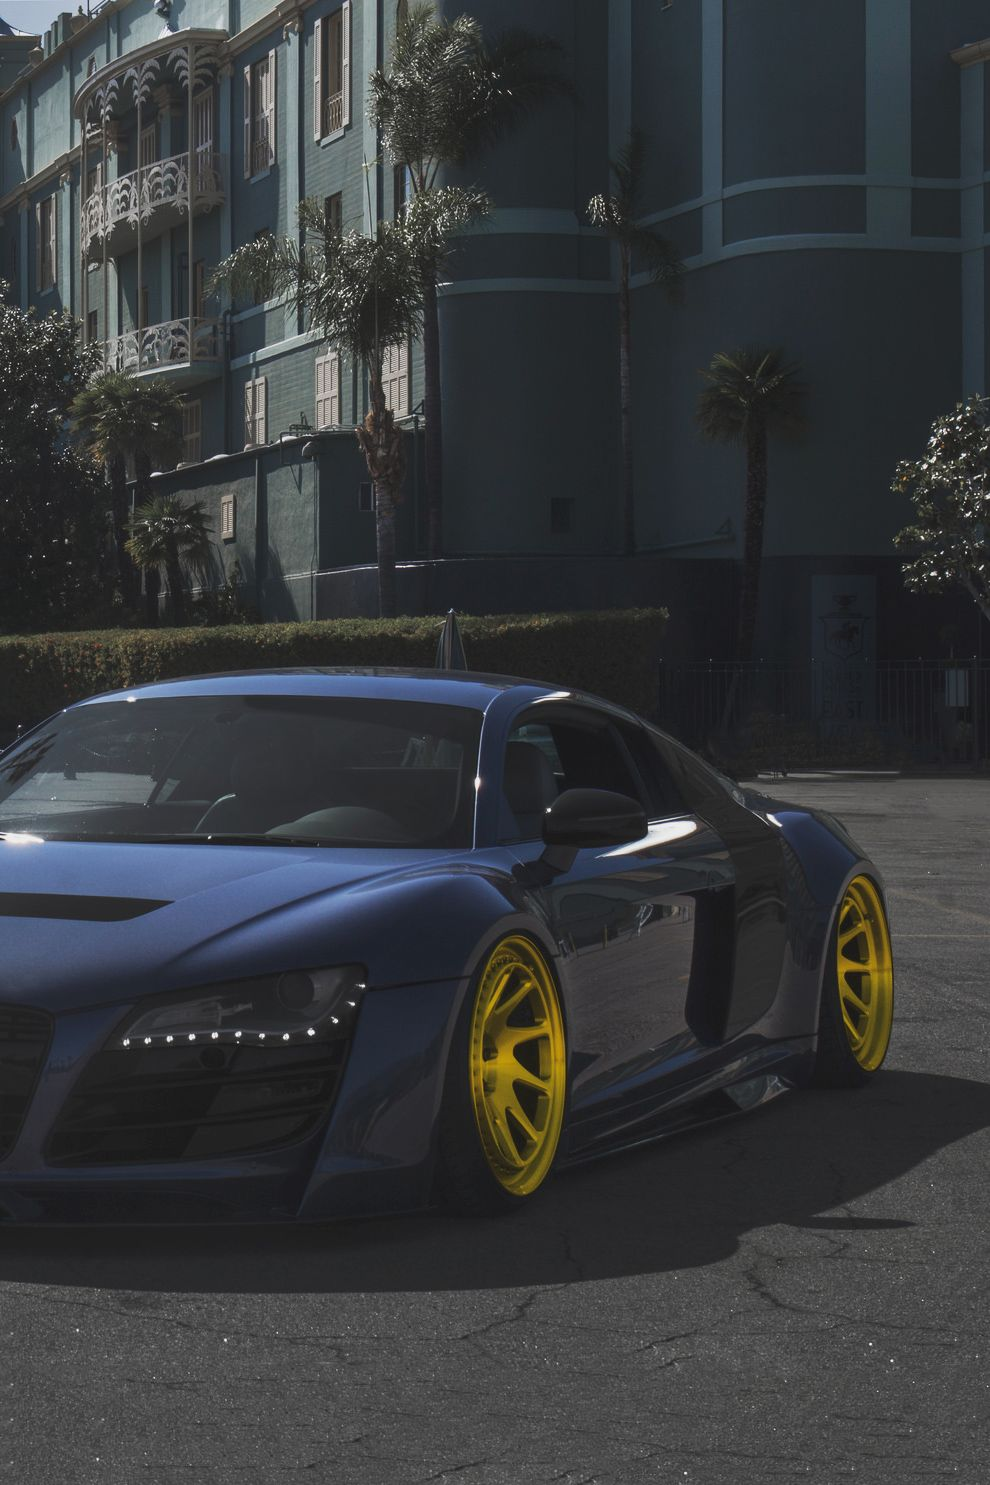 Boden R8 - Boden Autohaus | Cars, Luxury cars and Super car